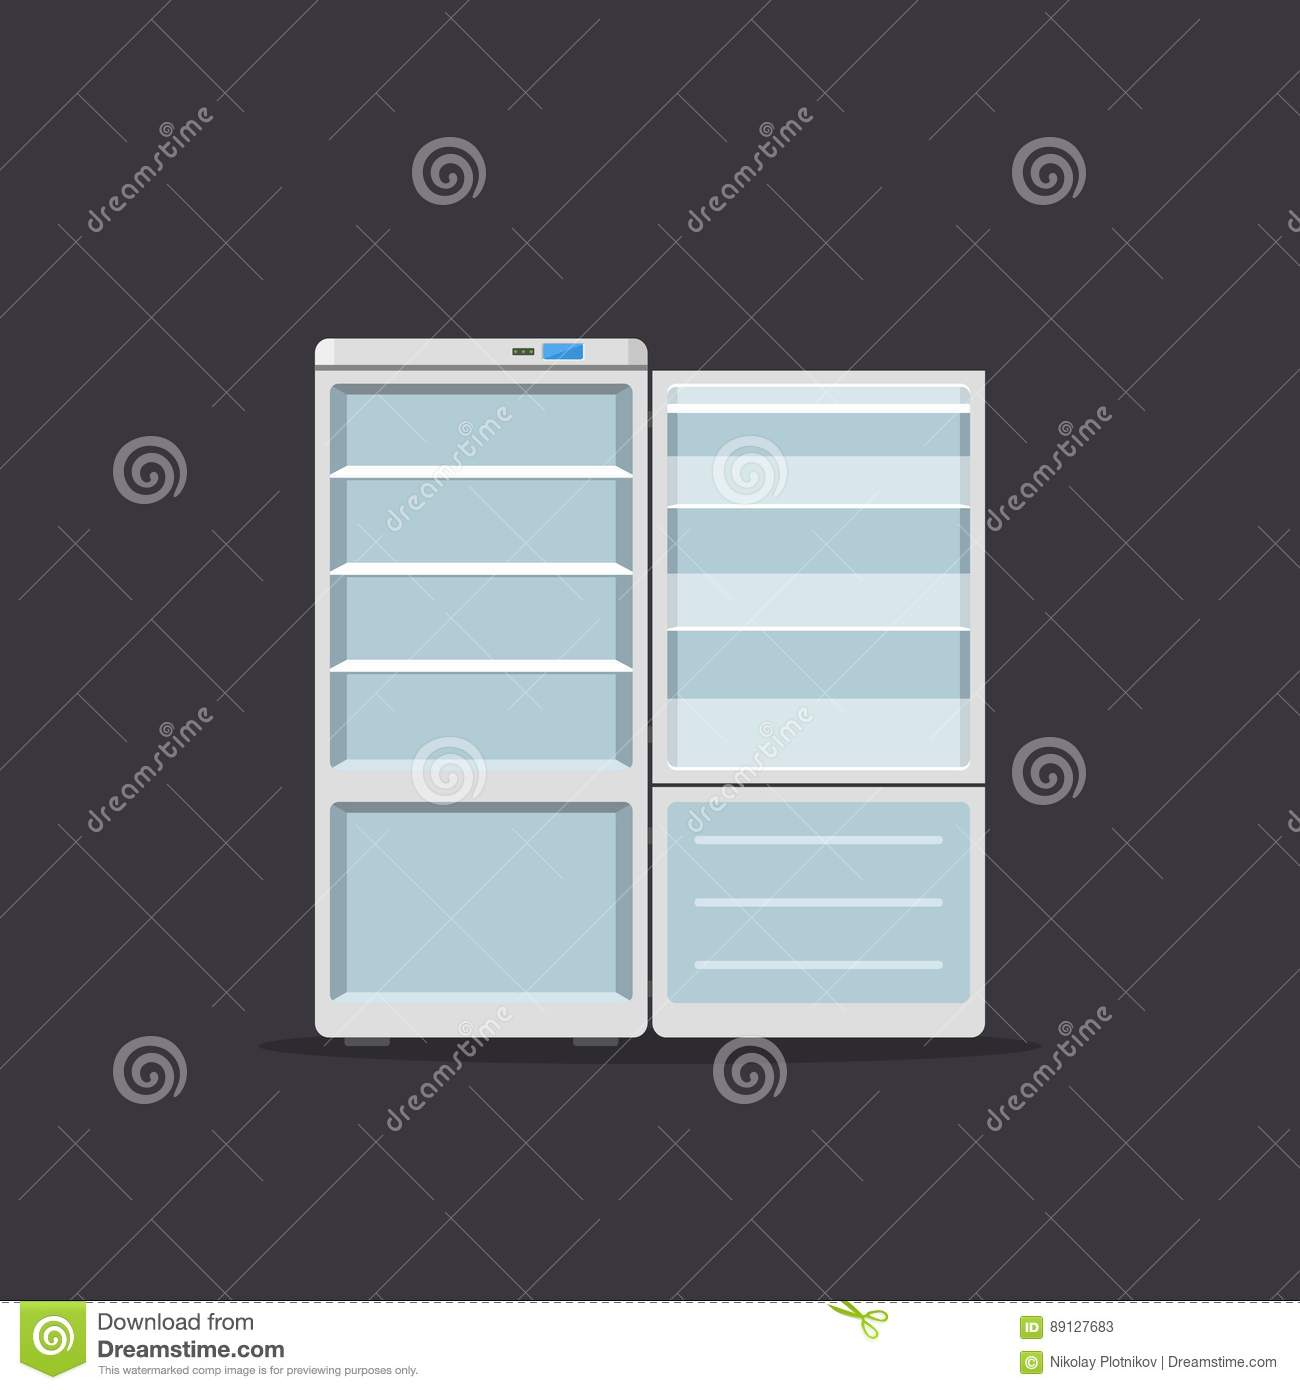 Appliance Diagram Background Wiring Services For Household Appliances Fridge Open Isolated On Dark Rh Dreamstime Com Whirlpool Parts Diagrams Pvm1790sr1ss